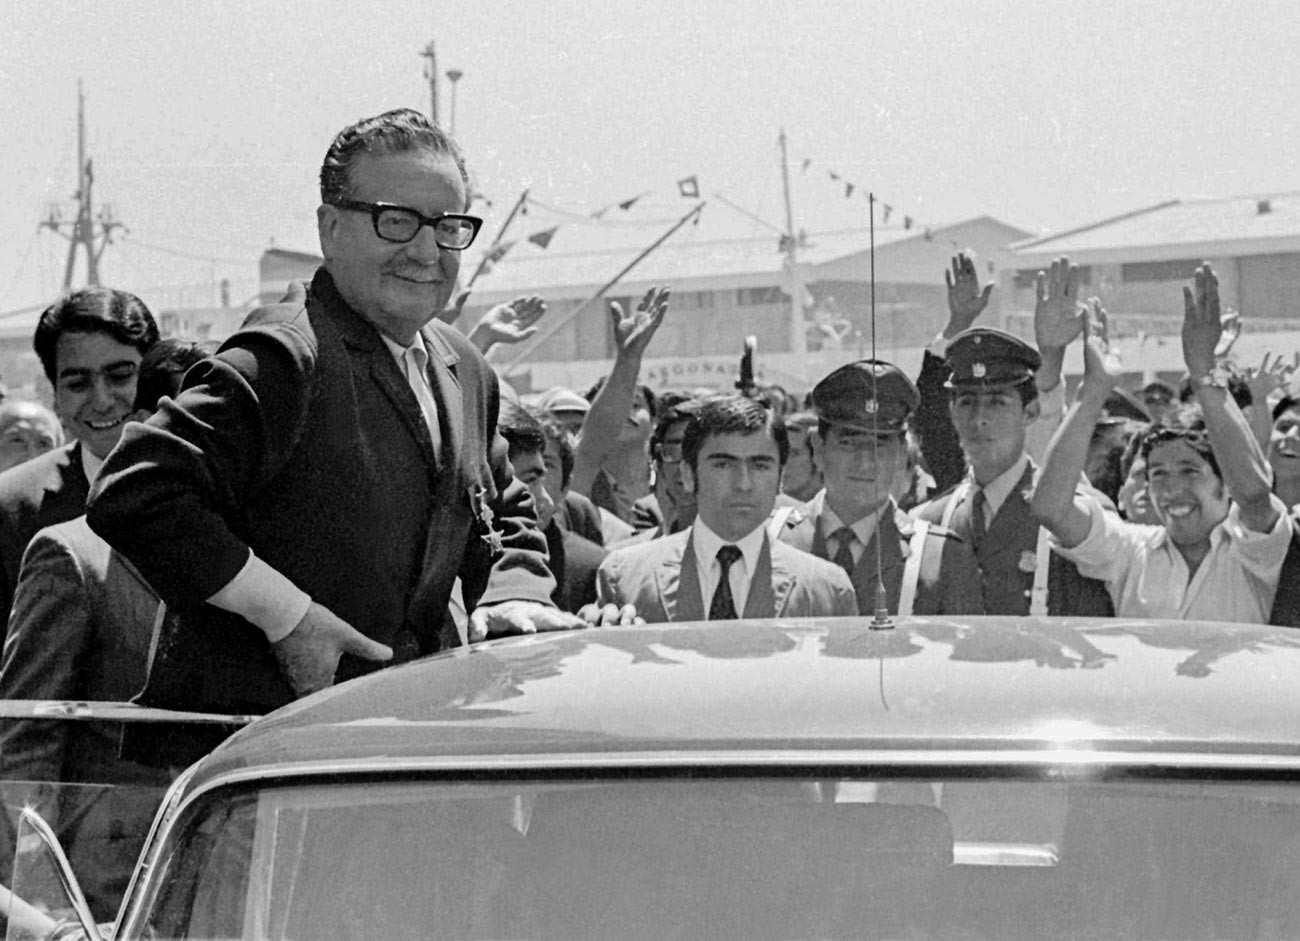 Presidente socialista do Chile, Salvador Allende